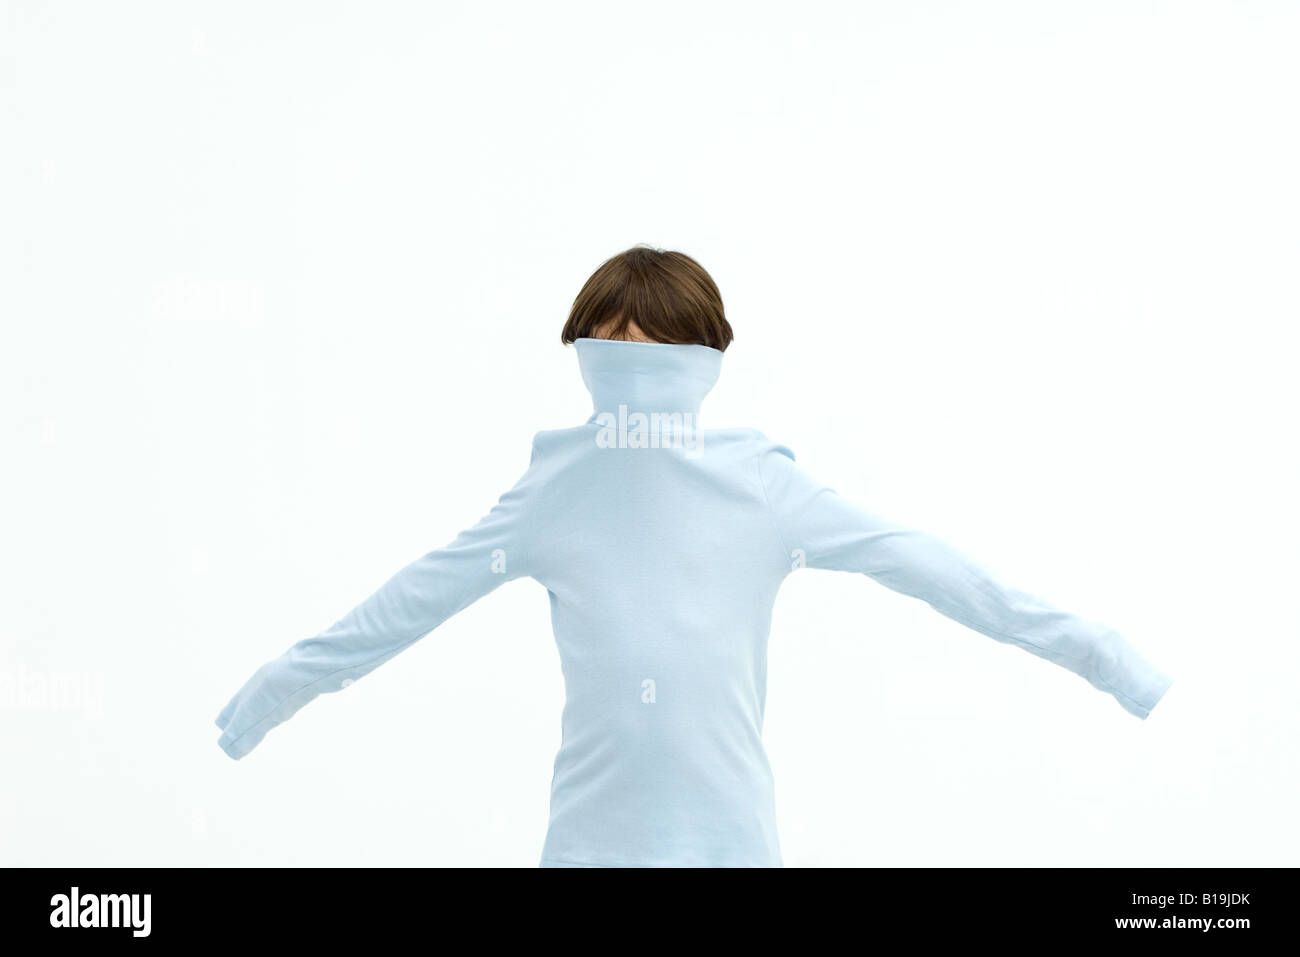 Boy wearing turtleneck pulled over his face, arms outstretched - Stock Image